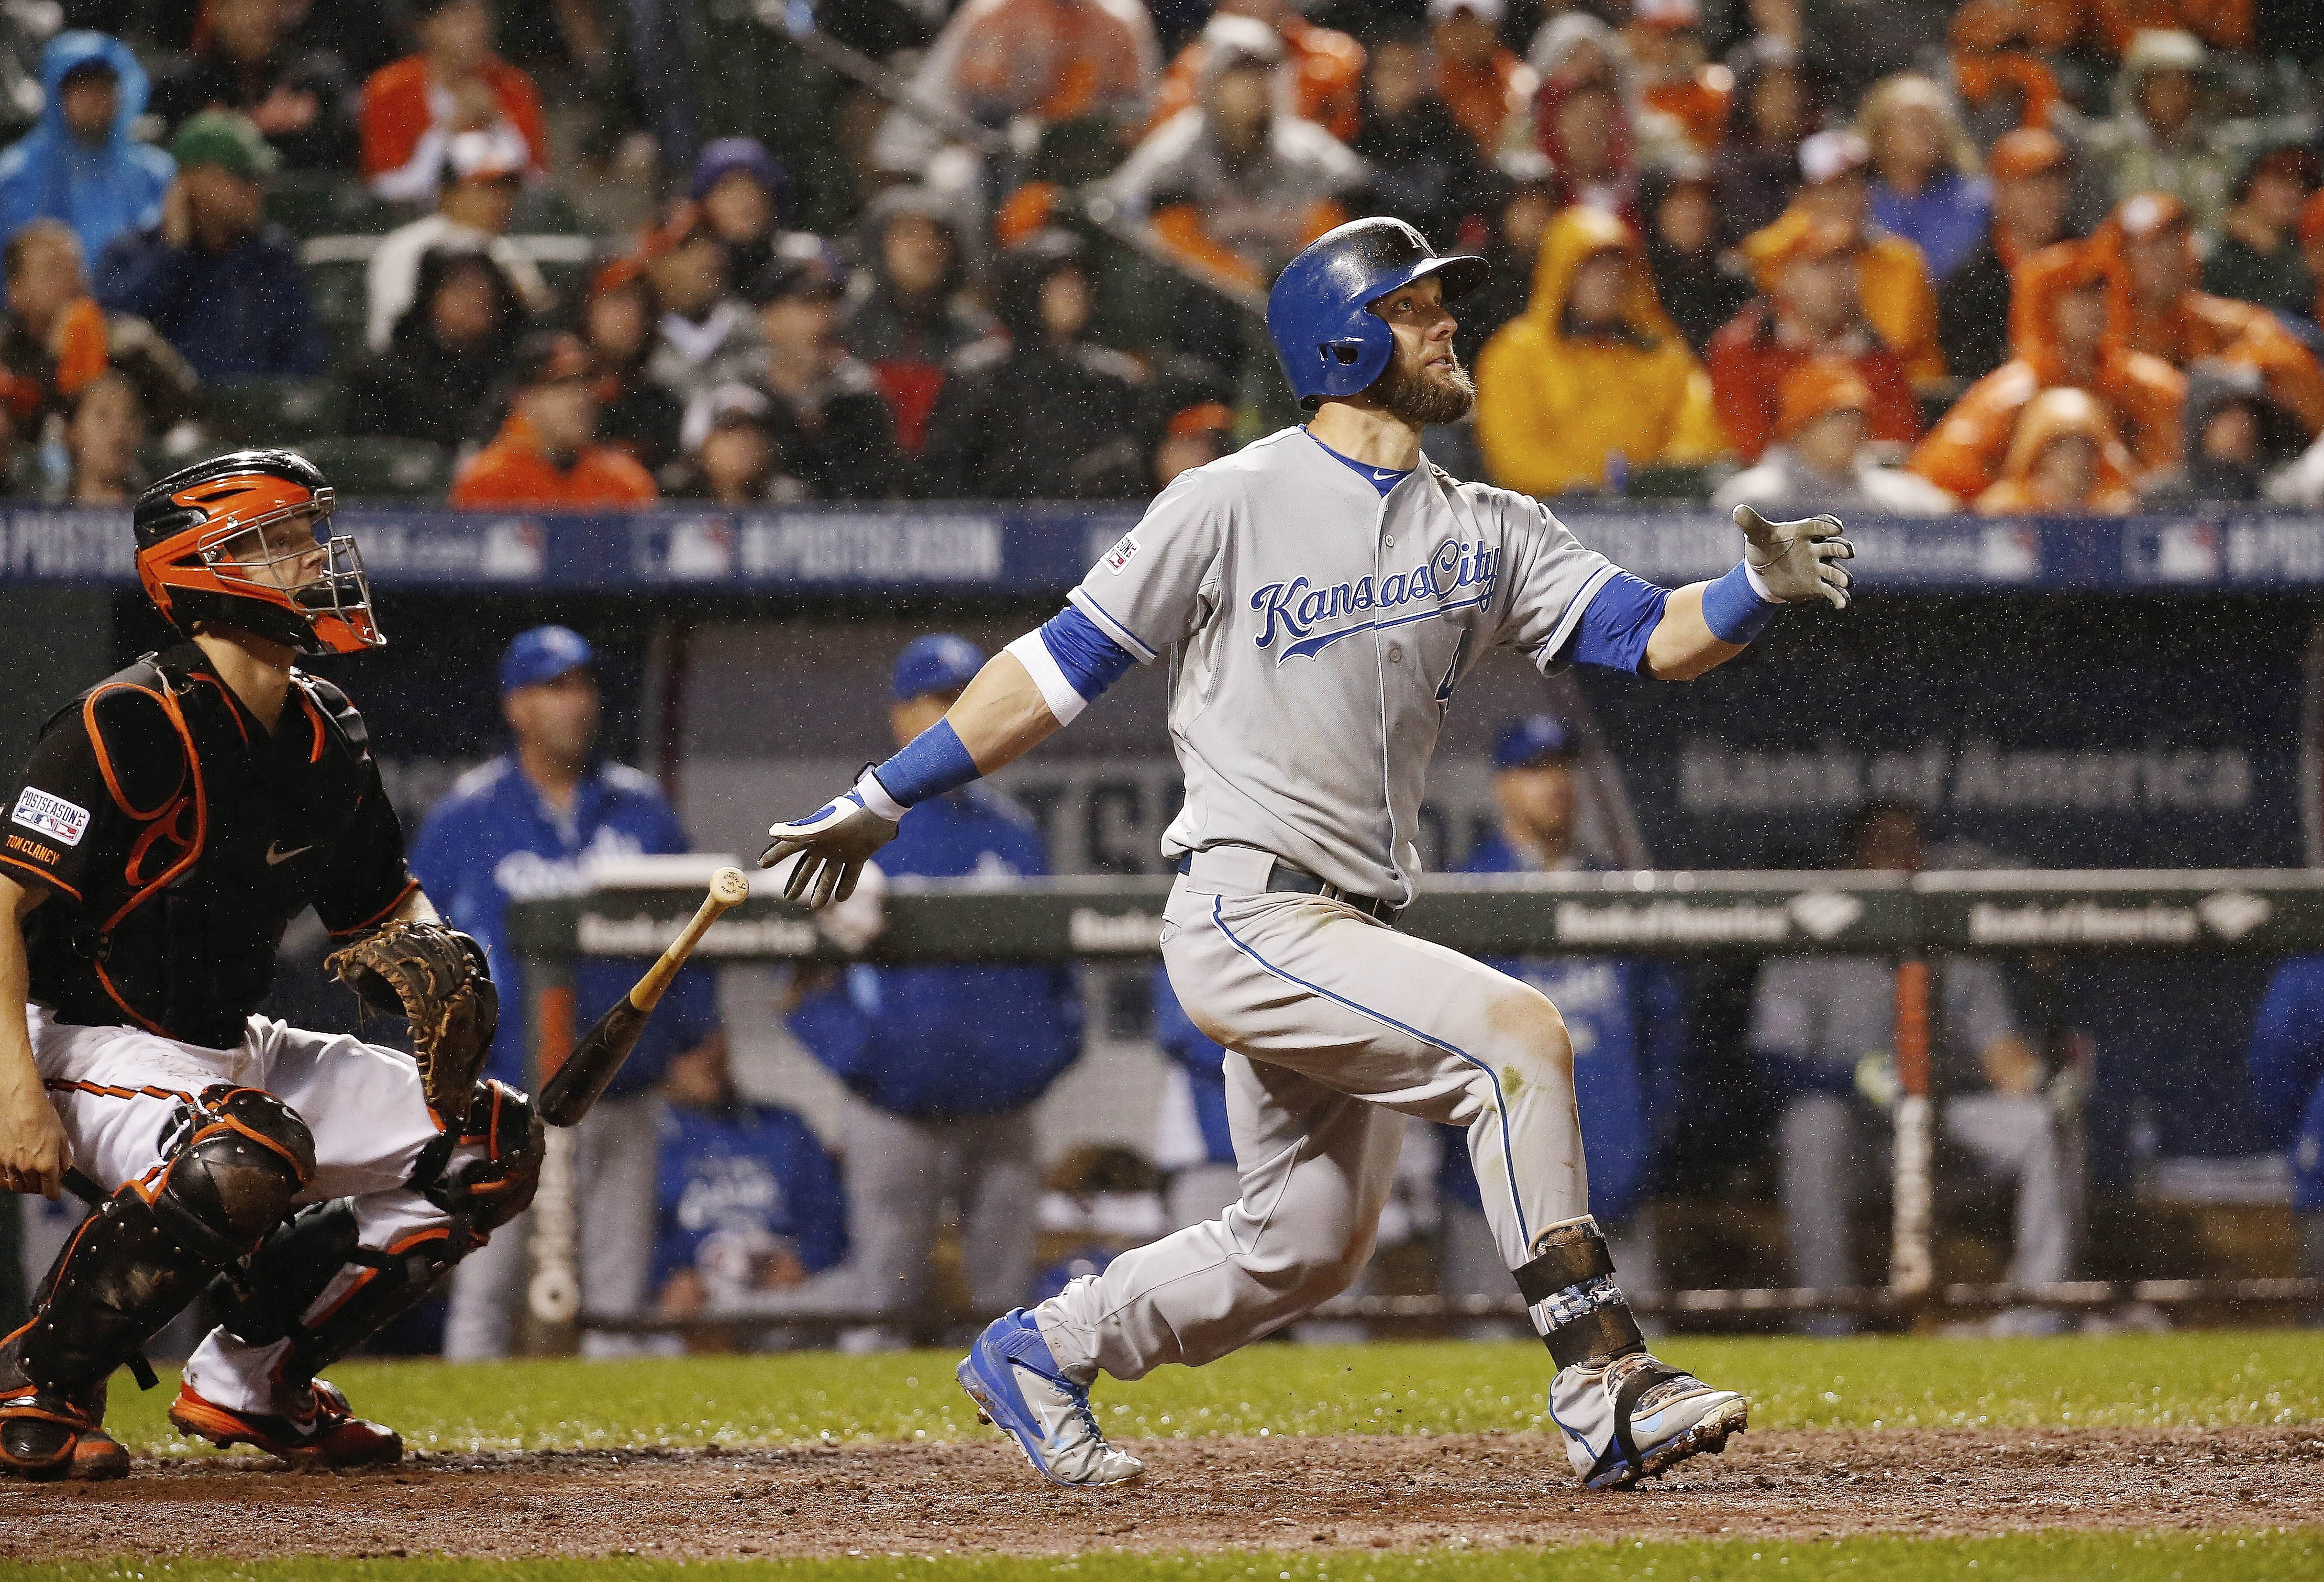 FILE - In this Oct. 11, 2014, file photo, Kansas City Royals' Alex Gordon (4) watches his solo home run during the 10th inning of Game 1 of the American League baseball championship series against the Baltimore Orioles, in Baltimore. A person familiar wit